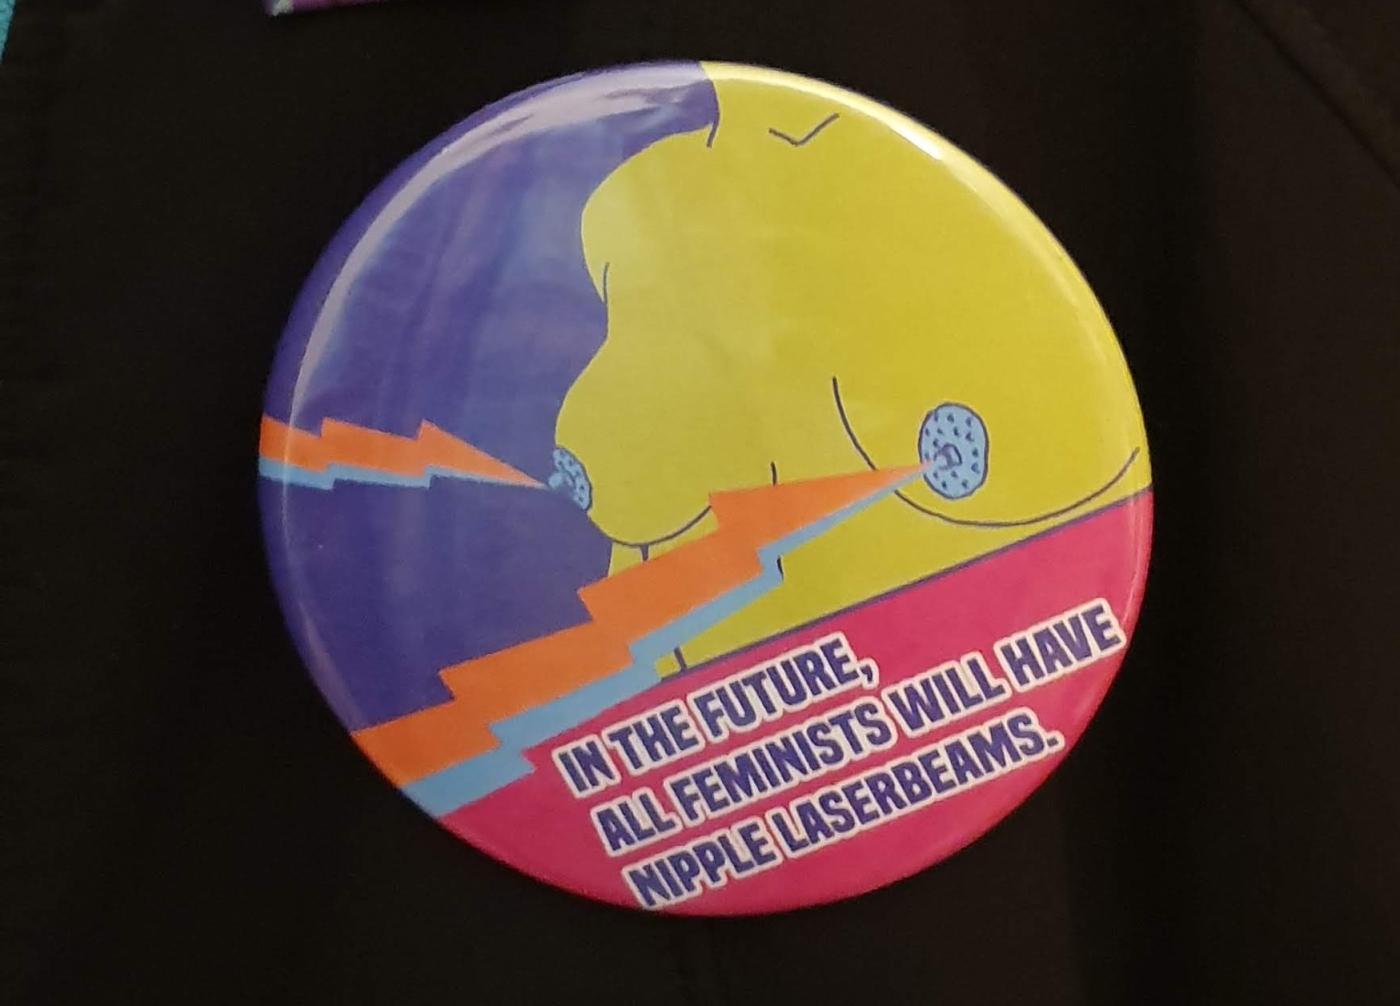 "a black coat with a round badge on. The badge image is of a naked human torso with green skin and blue nipples. There are lightning bolts shooting from the breasts. The badge text reads ""in the future, all feminists will have nipple laserbeams"""